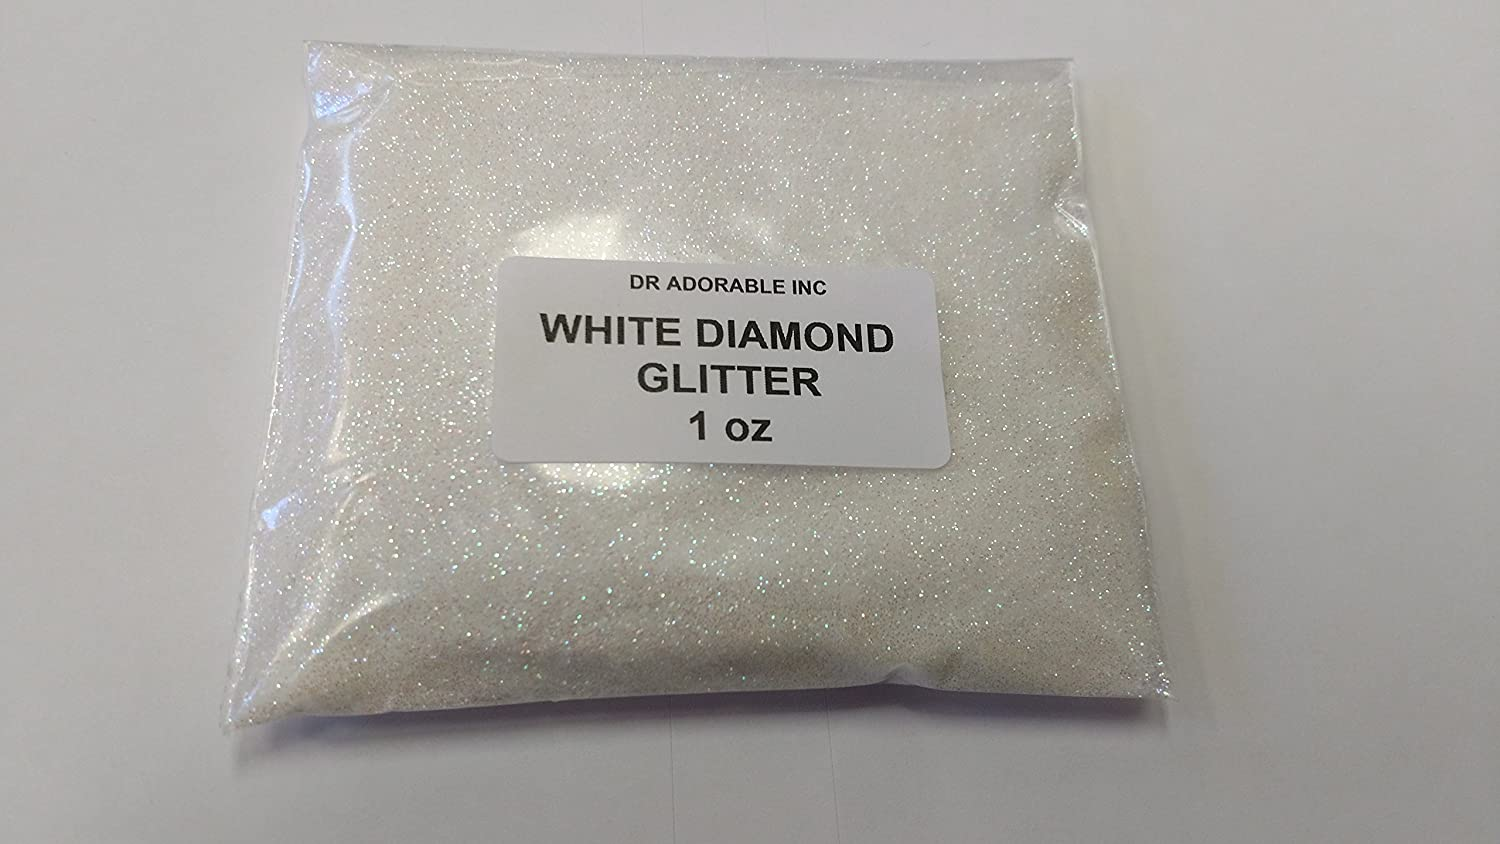 1 OZ WHITE DIAMOND GLITTER FOR SOAP COSMETIC BY DR.ADORABLE Dr Adorable Inc